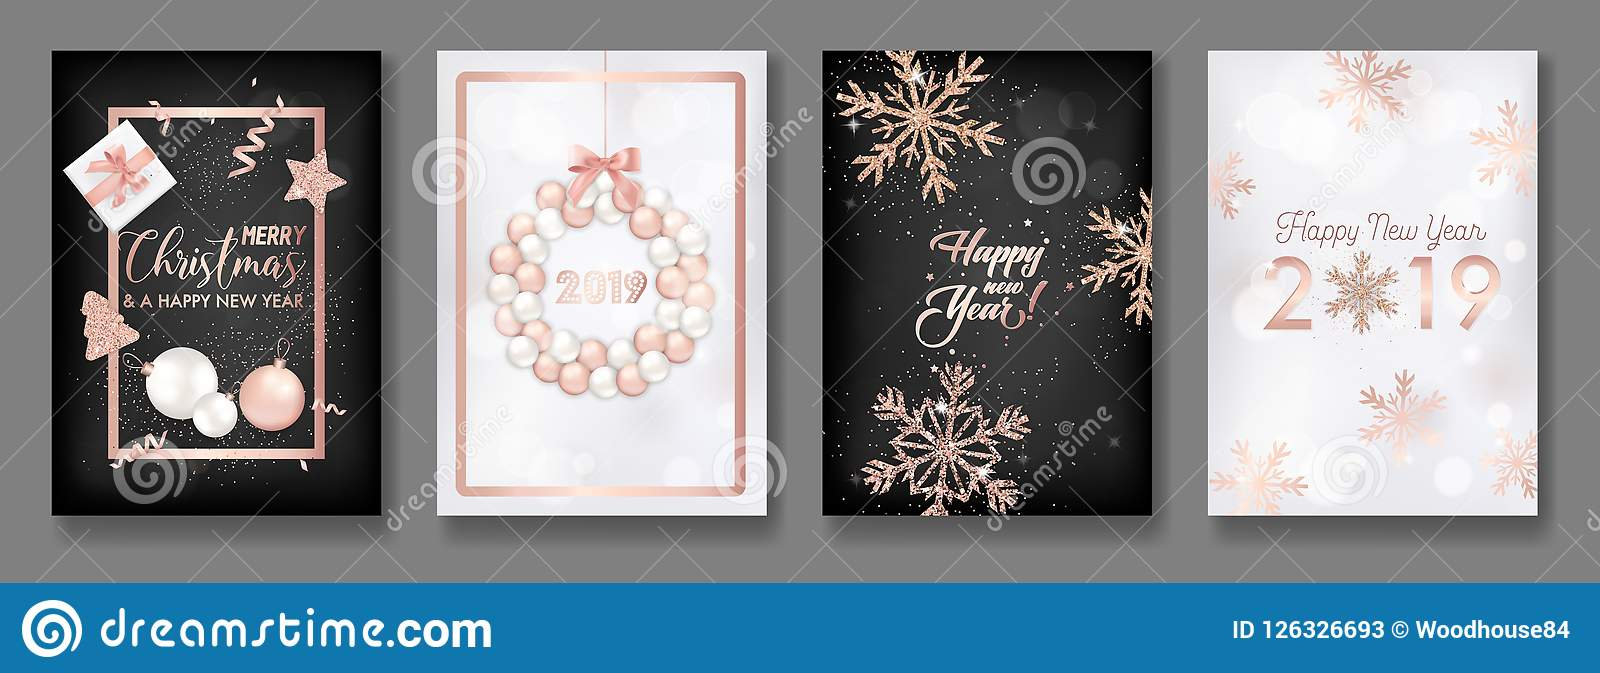 set of elegant merry christmas and new year 2019 cards with shining rose gold glitter christmas